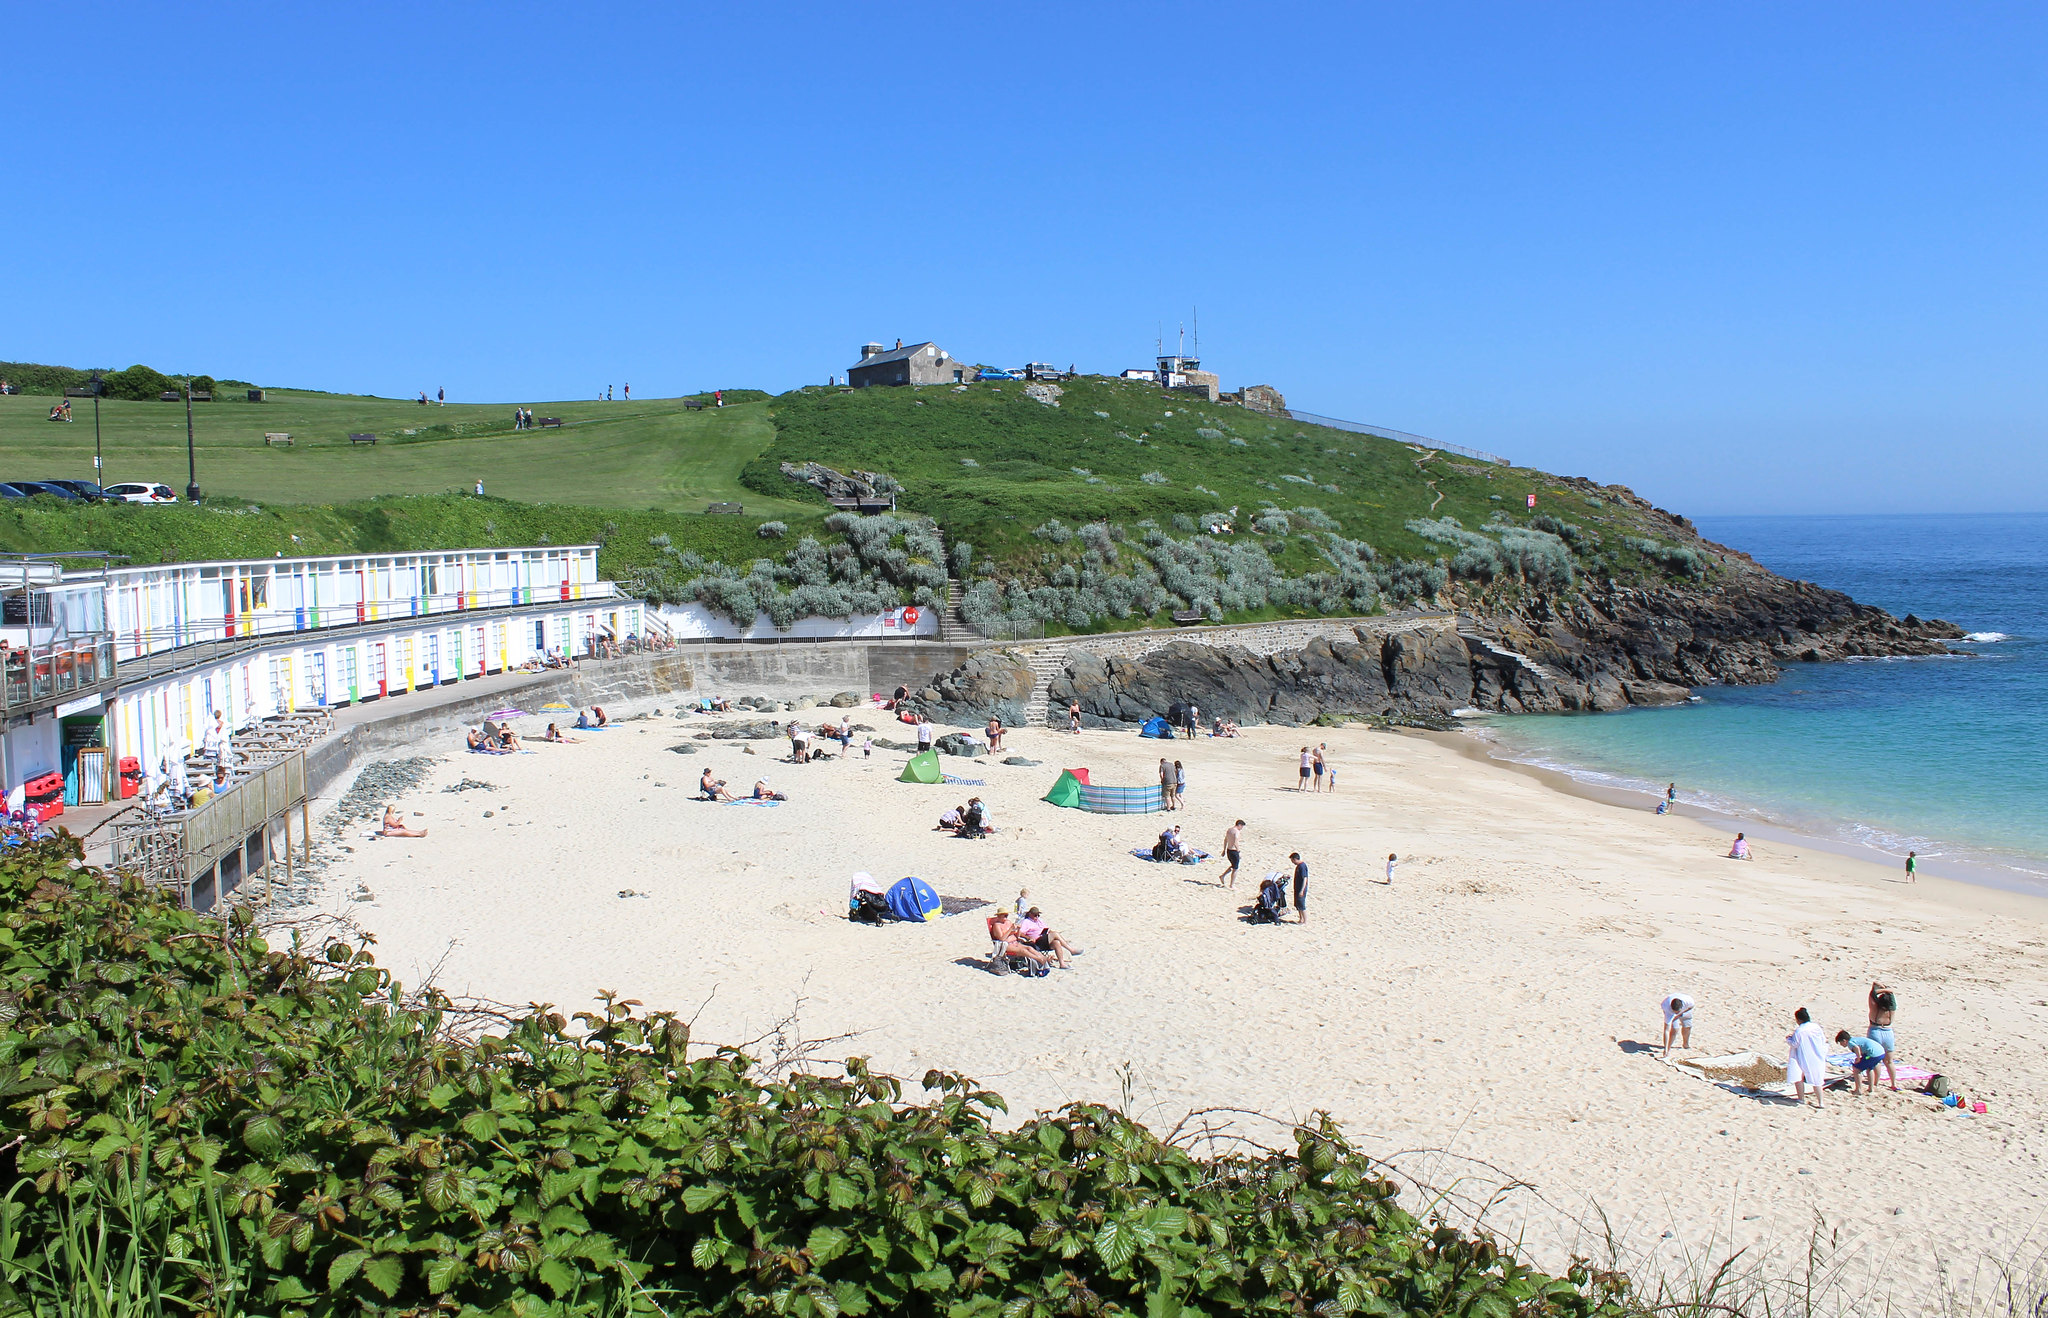 Porthgwidden Beach #cornwall #st-ives #cornish-beaches #family-beaches #england #seaside #holiday-resorts